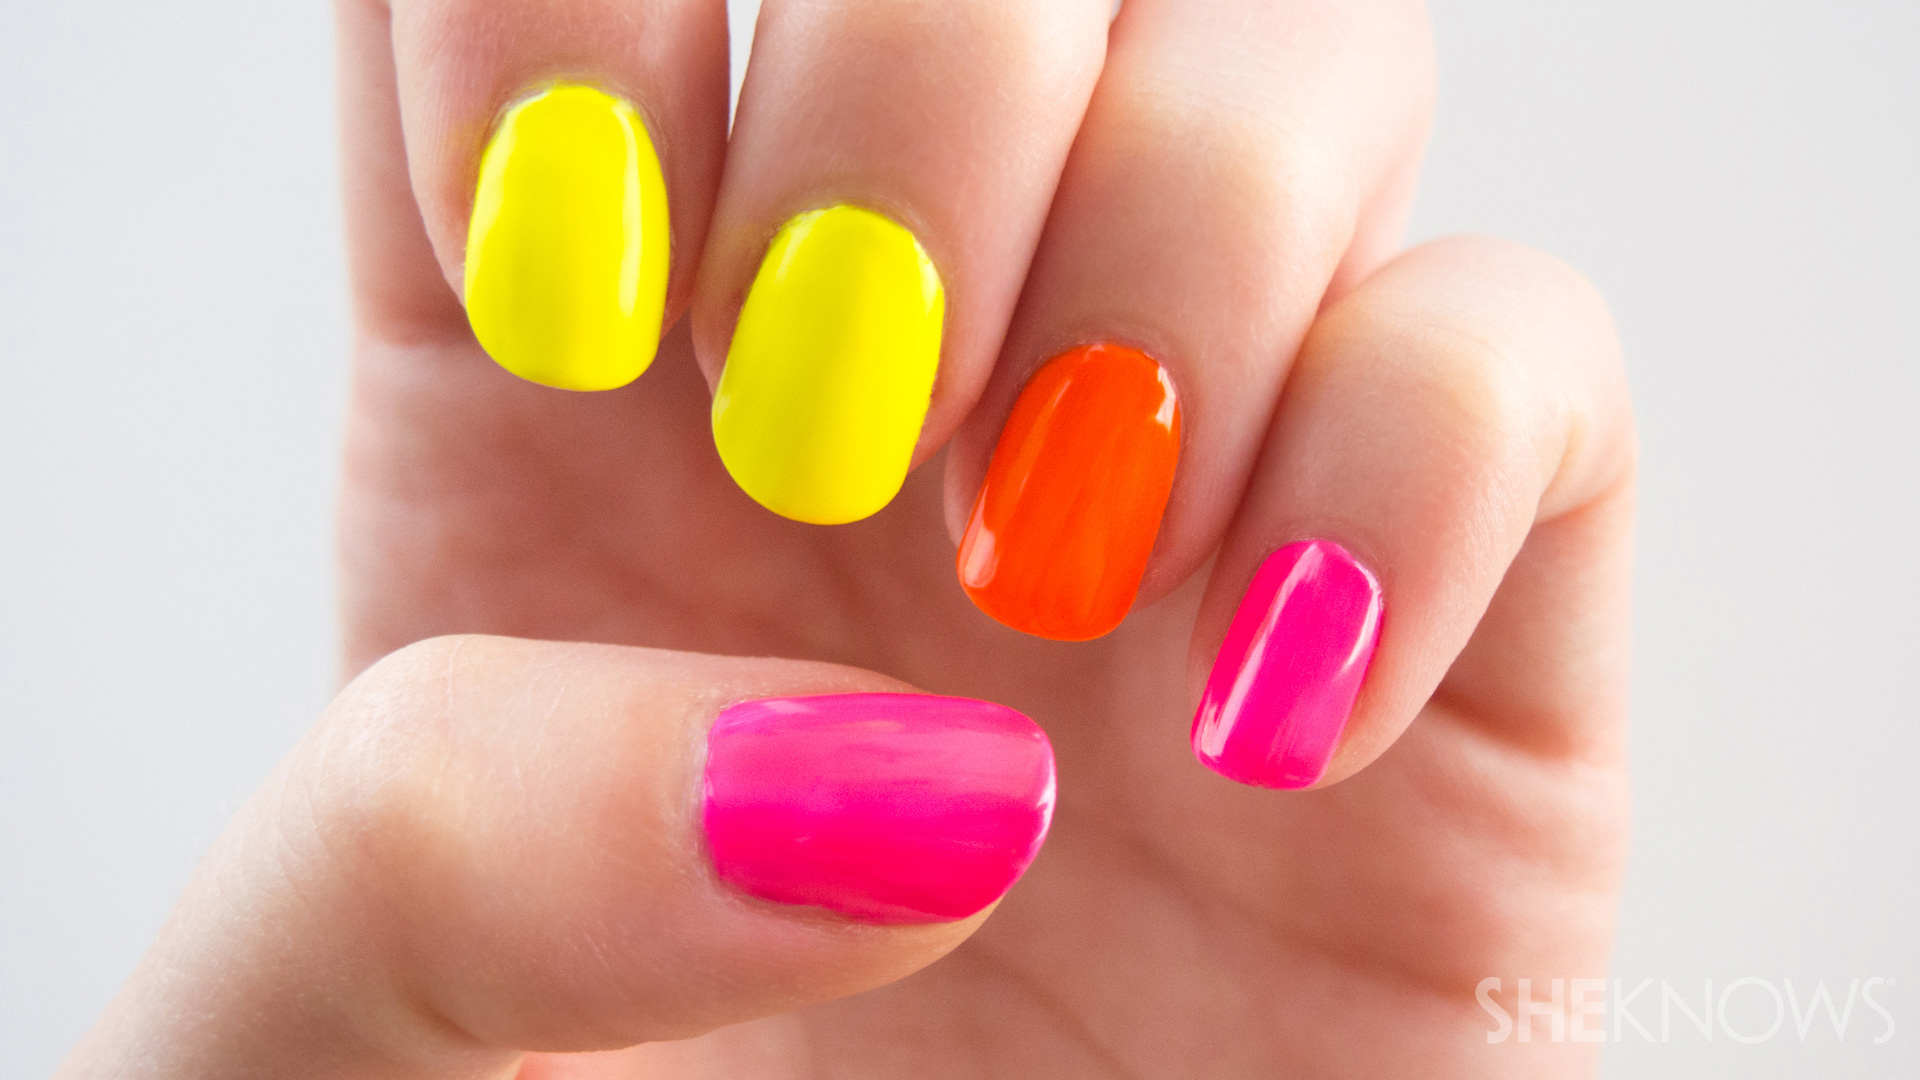 The secret to neon nail polish